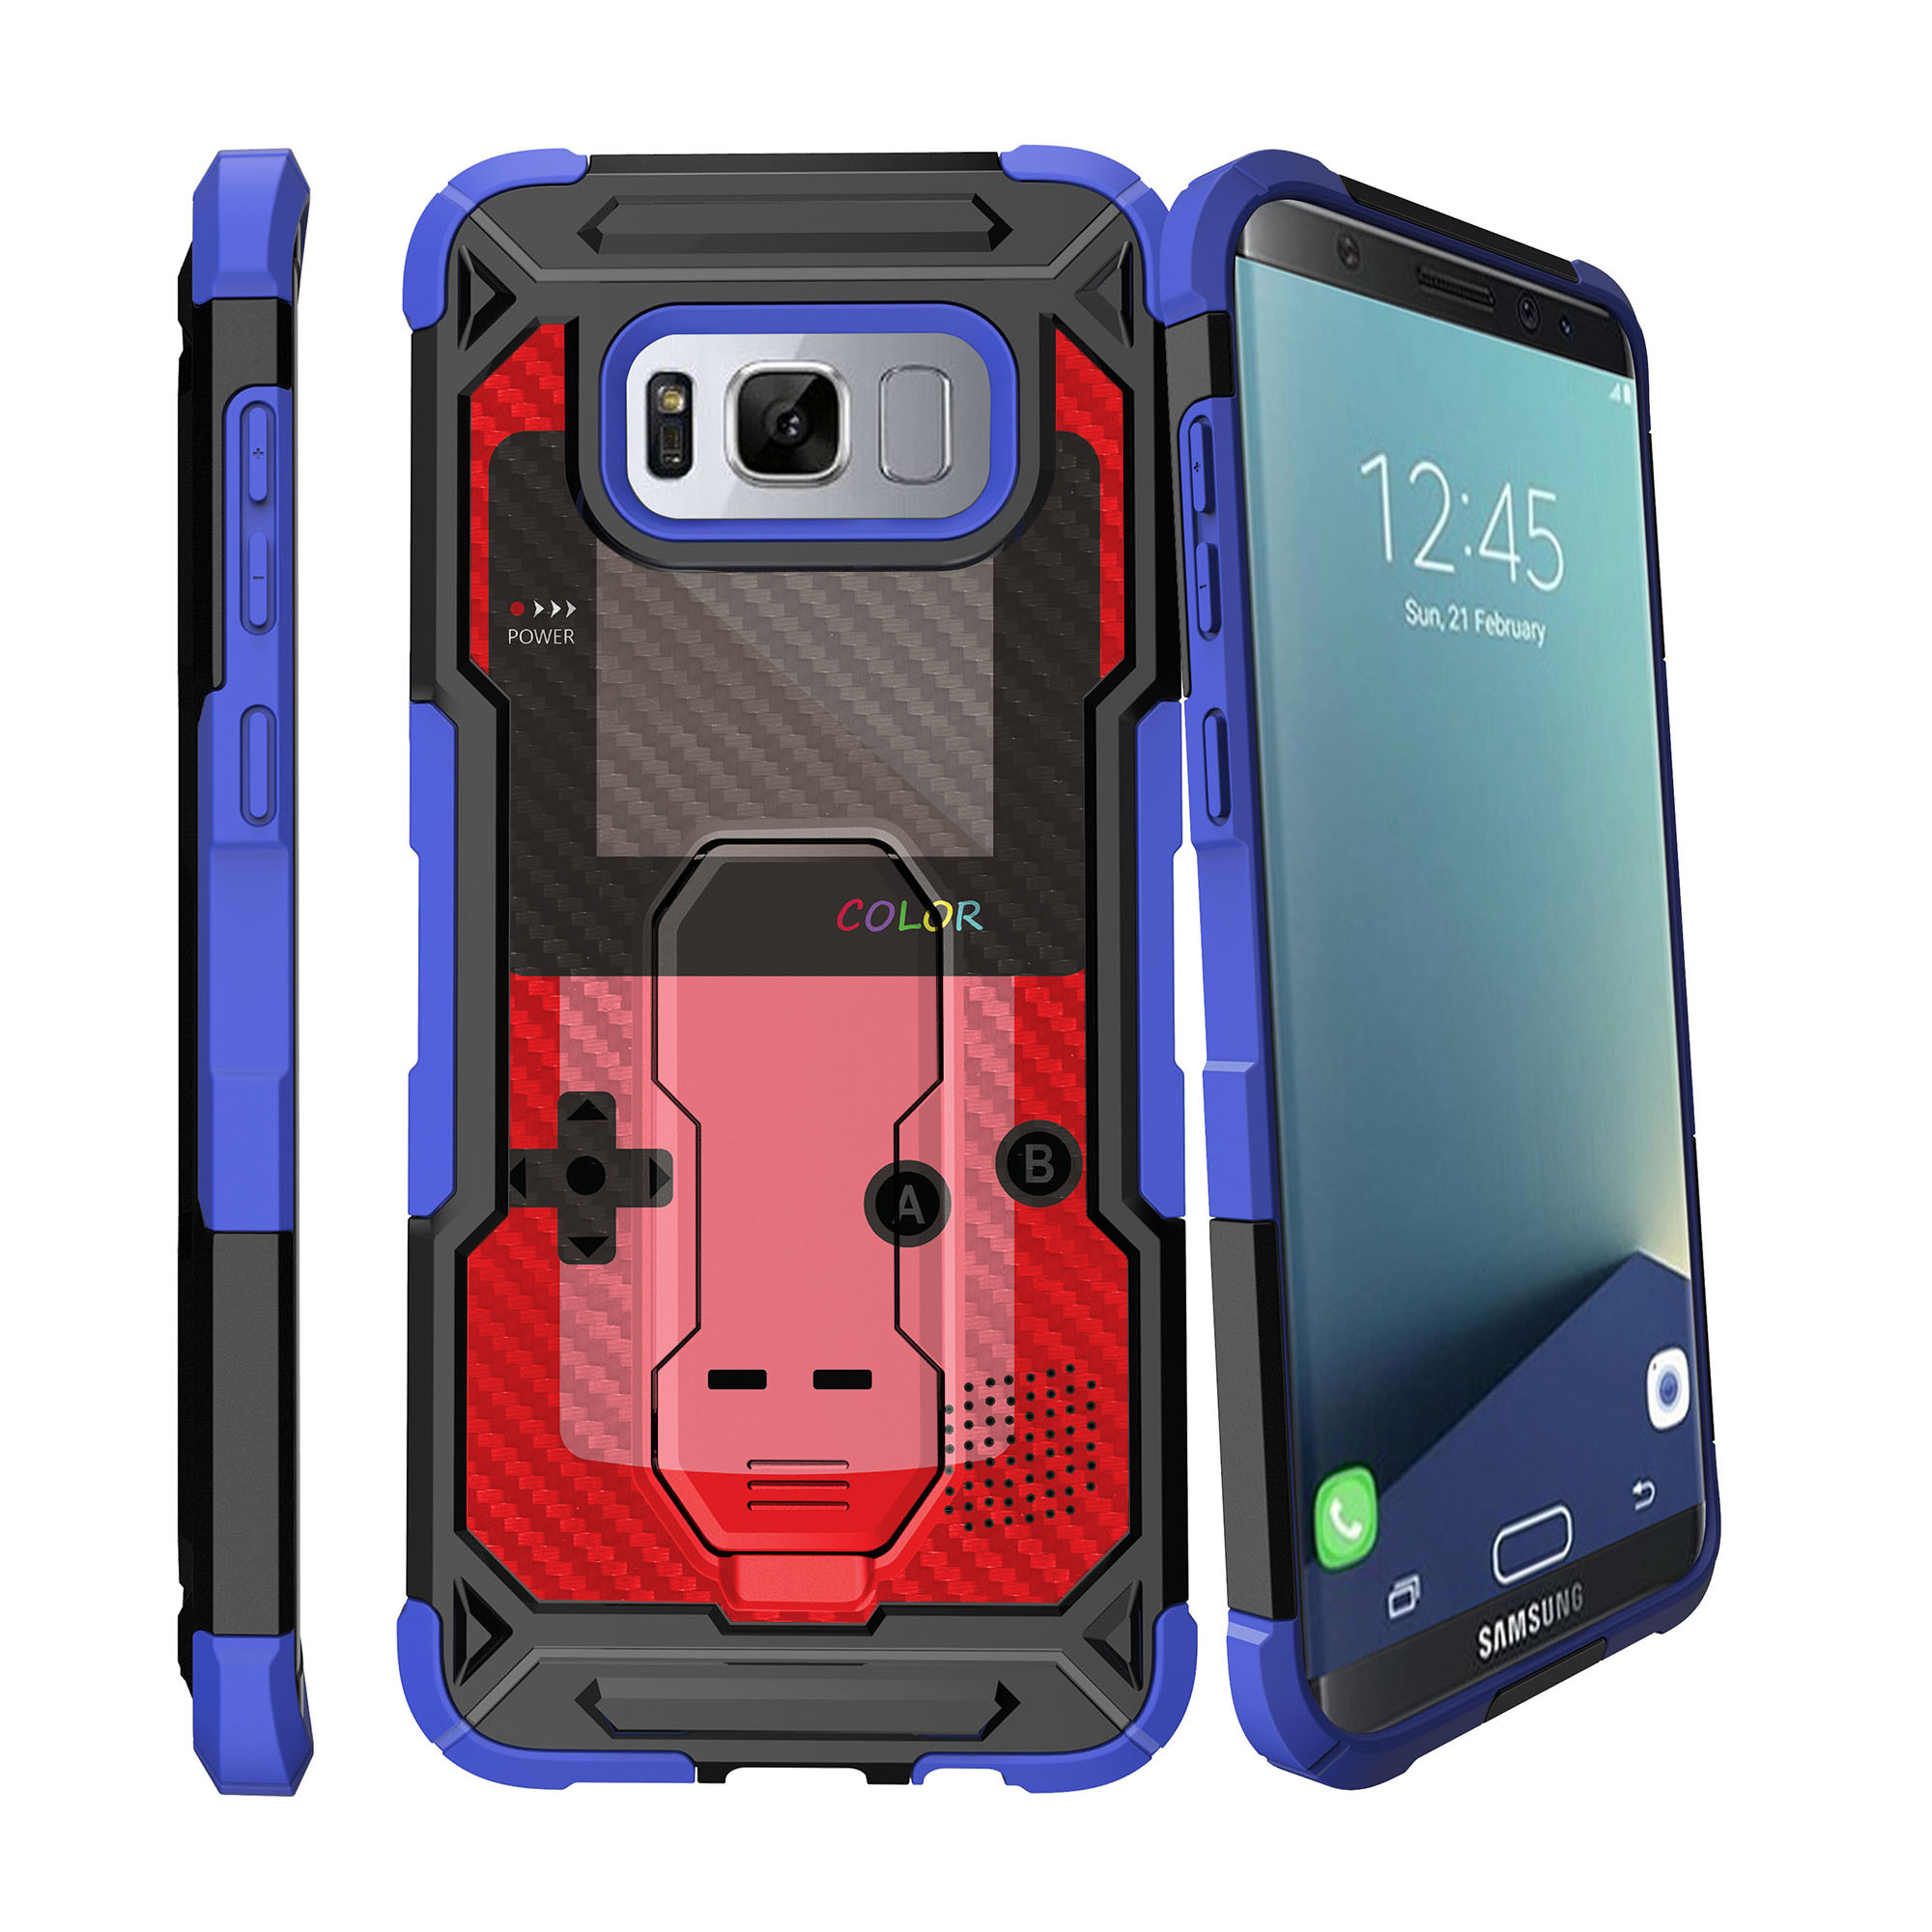 Case for Samsung Galaxy S8 Plus Version [ UFO Defense Case ][Galaxy S8 PLUS SM-G955][Blue Silicone] Carbon Fiber Texture Case with Holster + Stand Gaming Collection